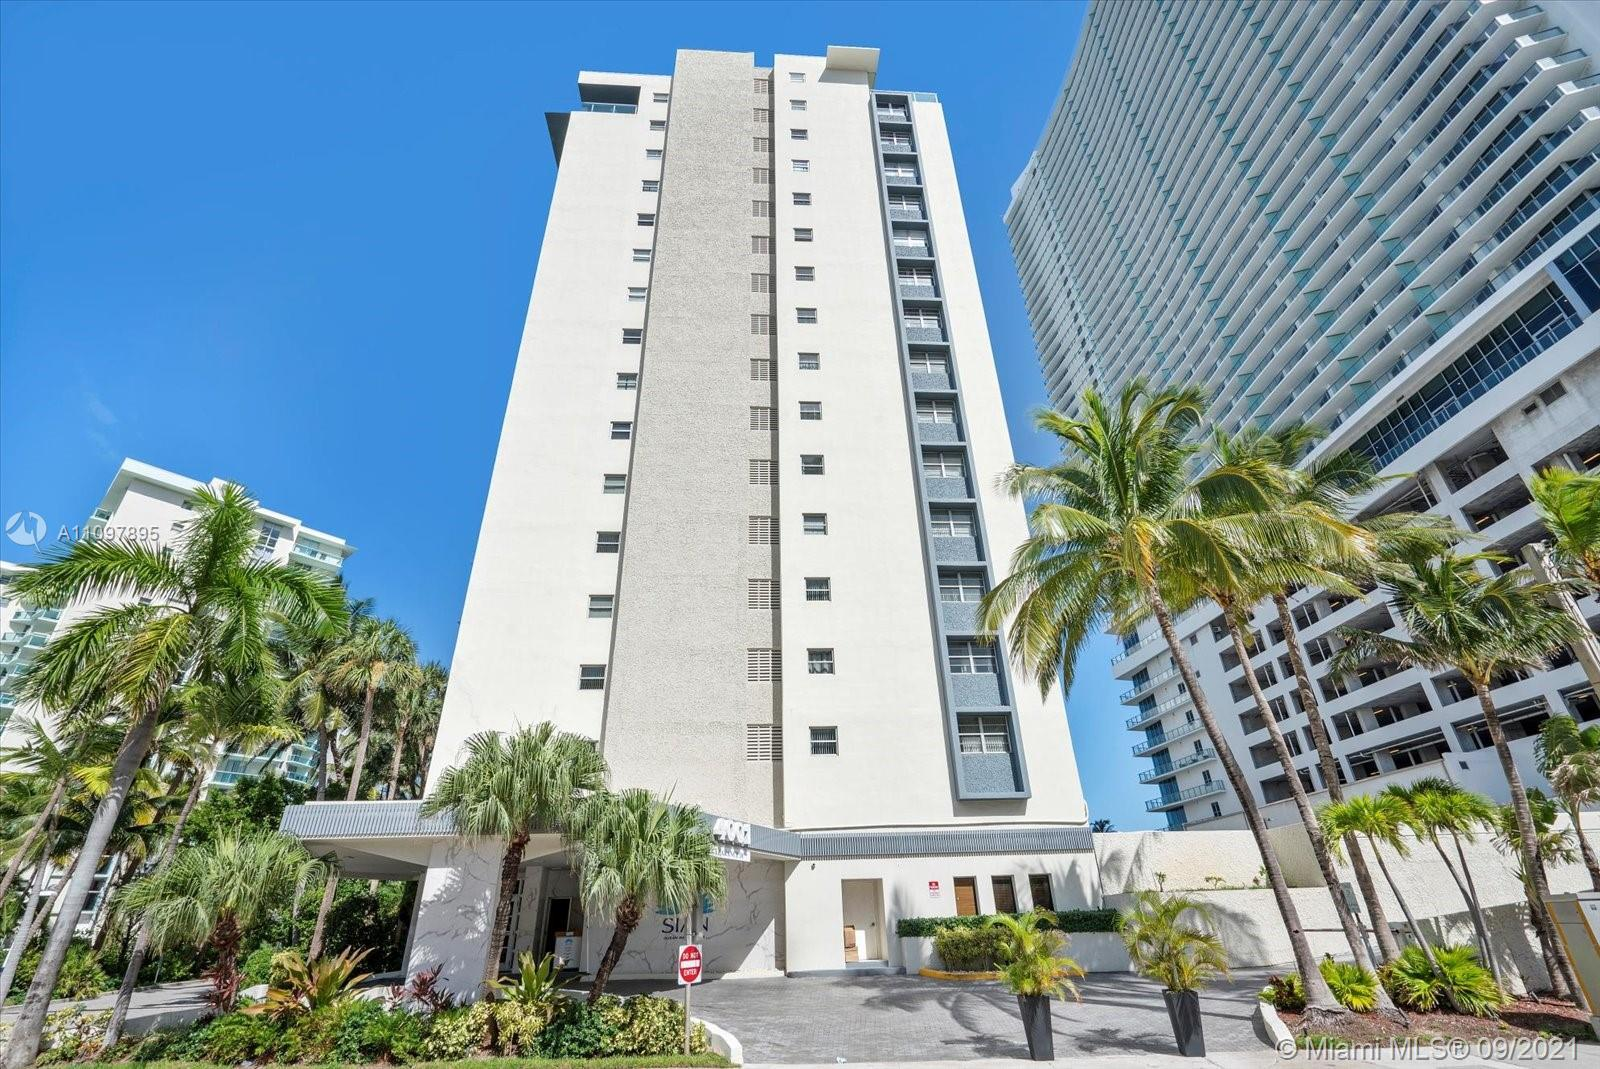 This beautiful condo located on the ocean side, 2 / 2 upgraded beautiful decorated. Condos is locate